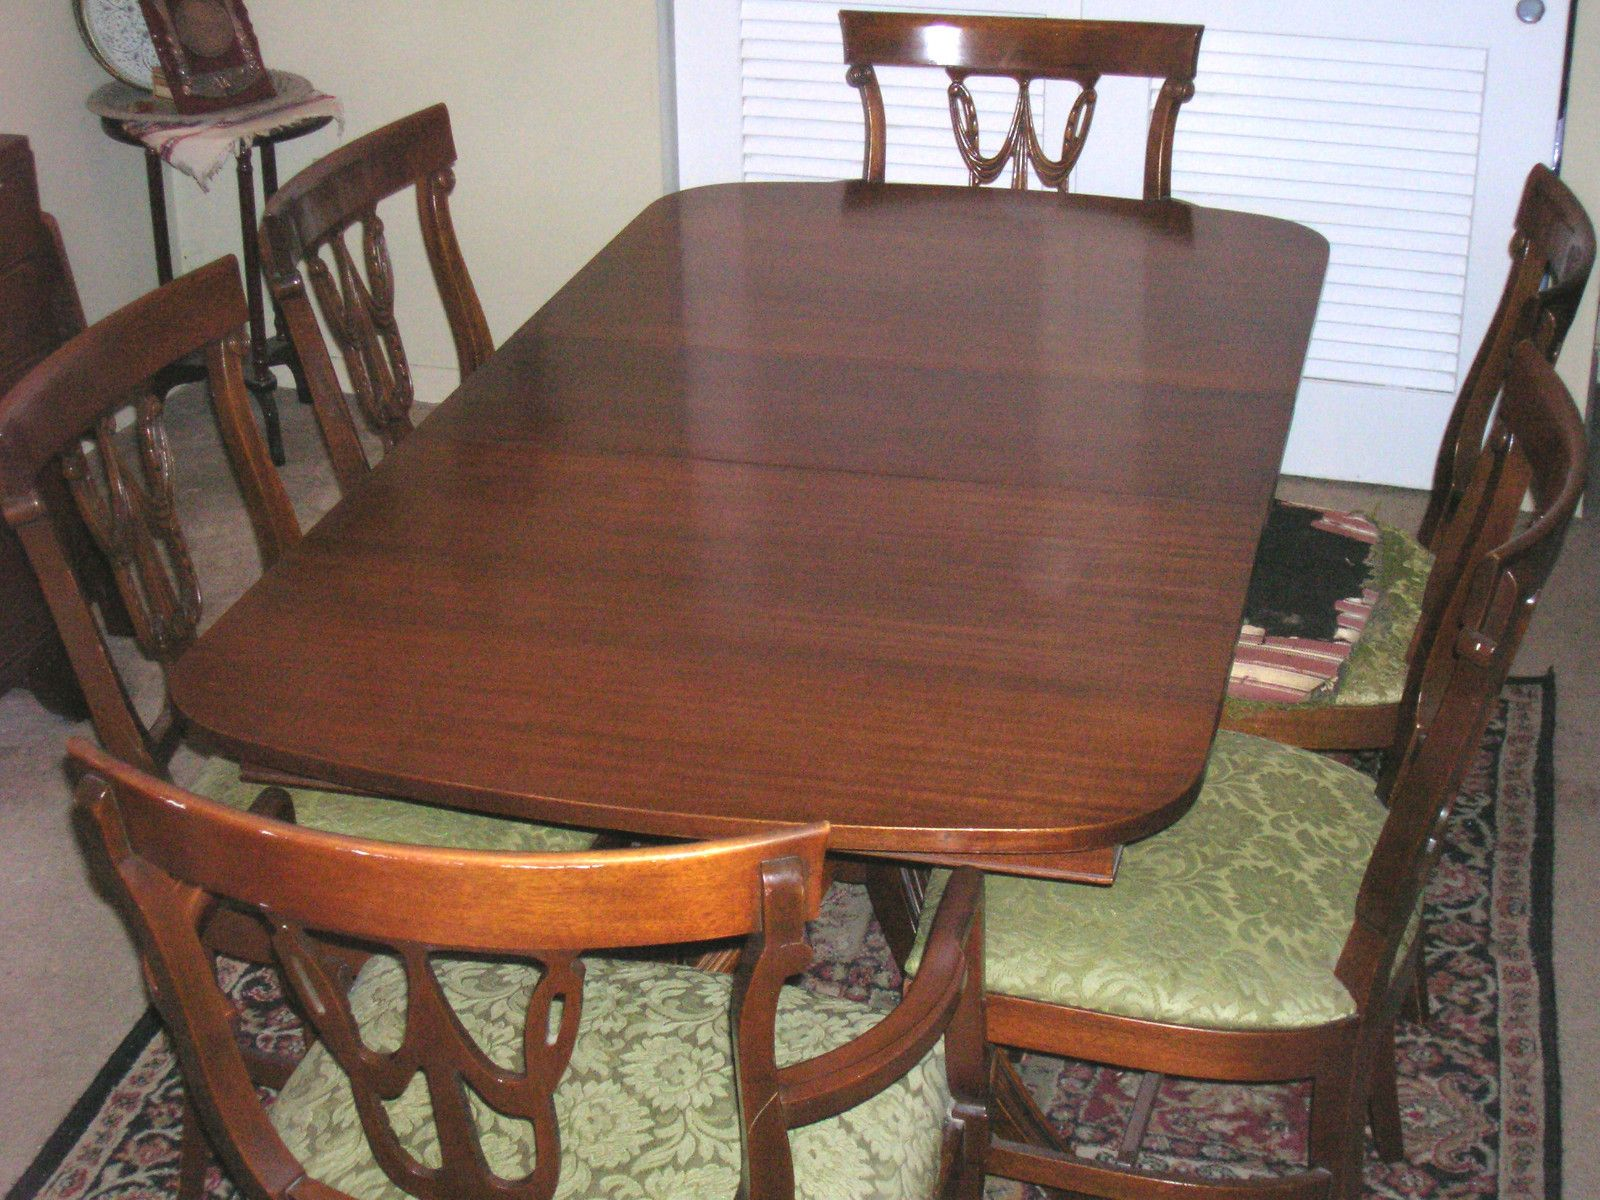 ANTIQUE MAHOGANY TABLE AND 6 CHAIRS BY RWAY FURNITURE CO 1940 S 1950